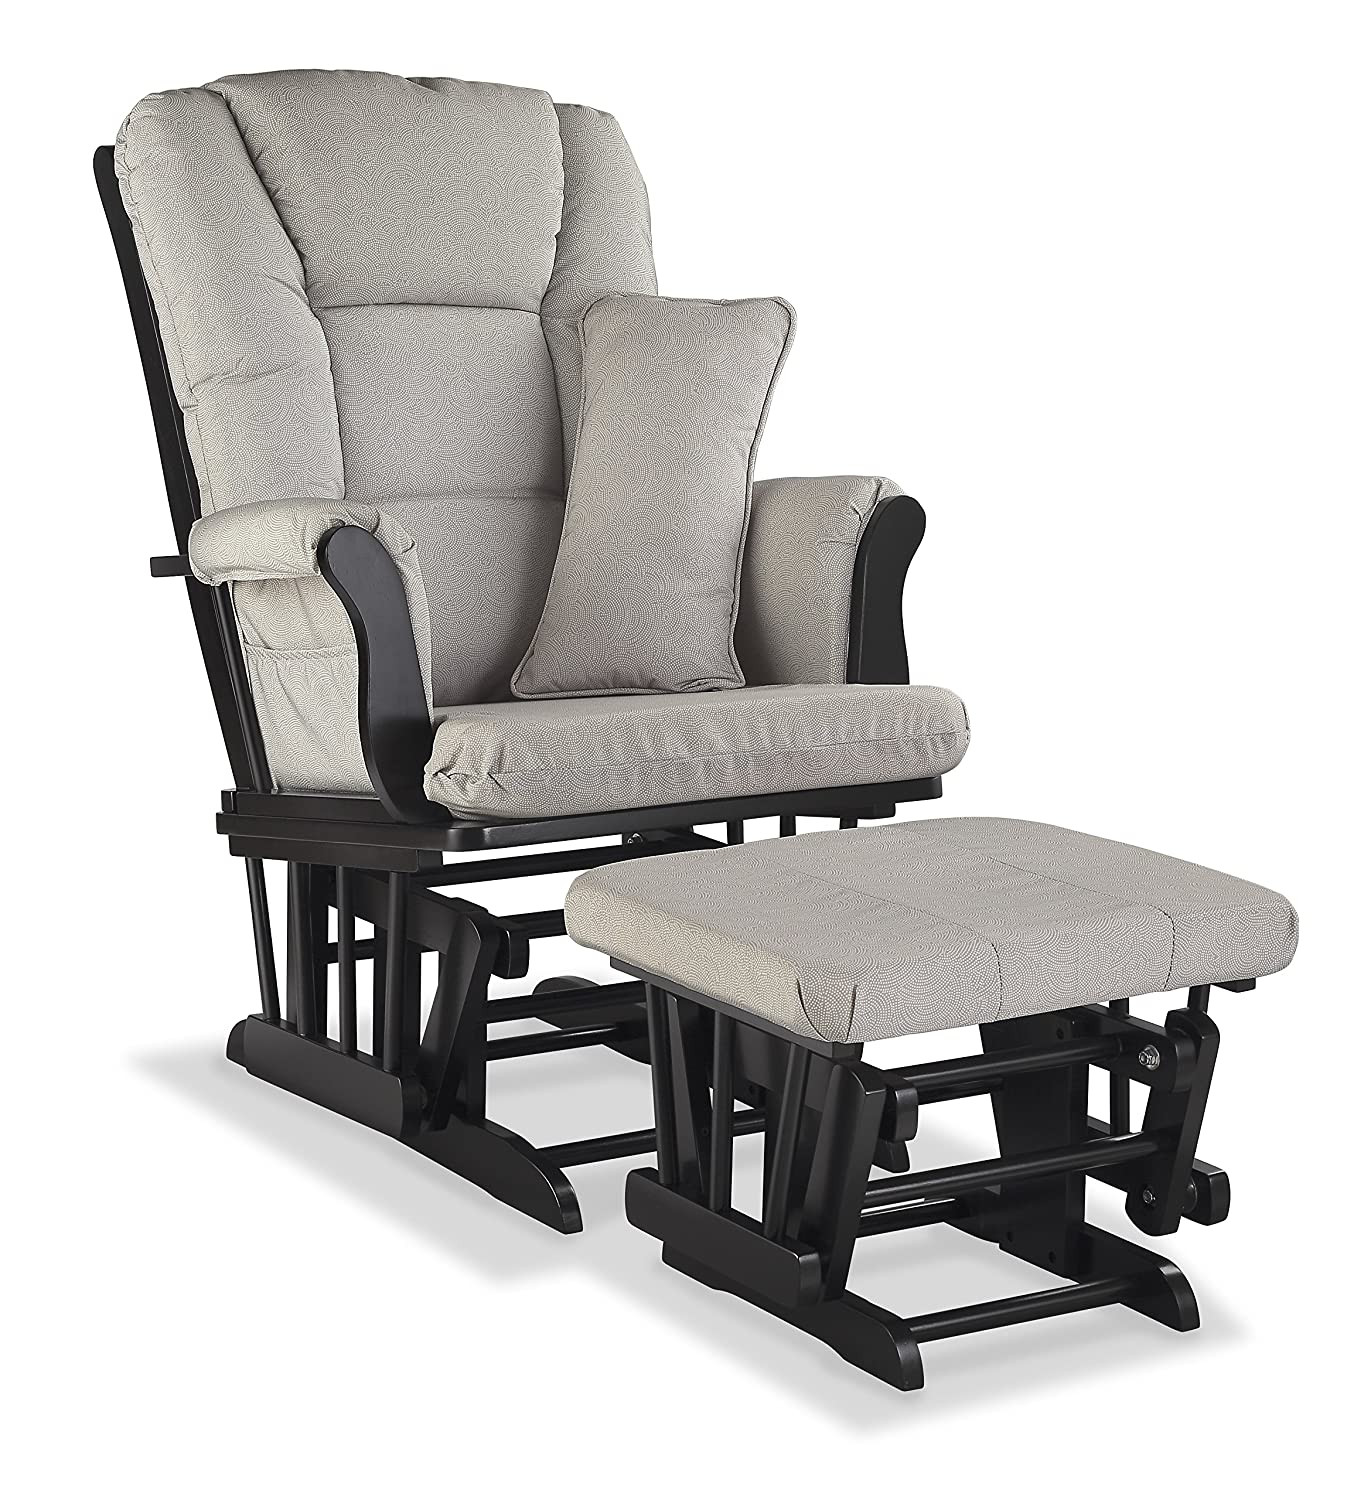 Storkcraft Tuscany Custom Glider and Ottoman with Free Lumbar Pillow, Espresso/Beige Stork Craft 06554-519